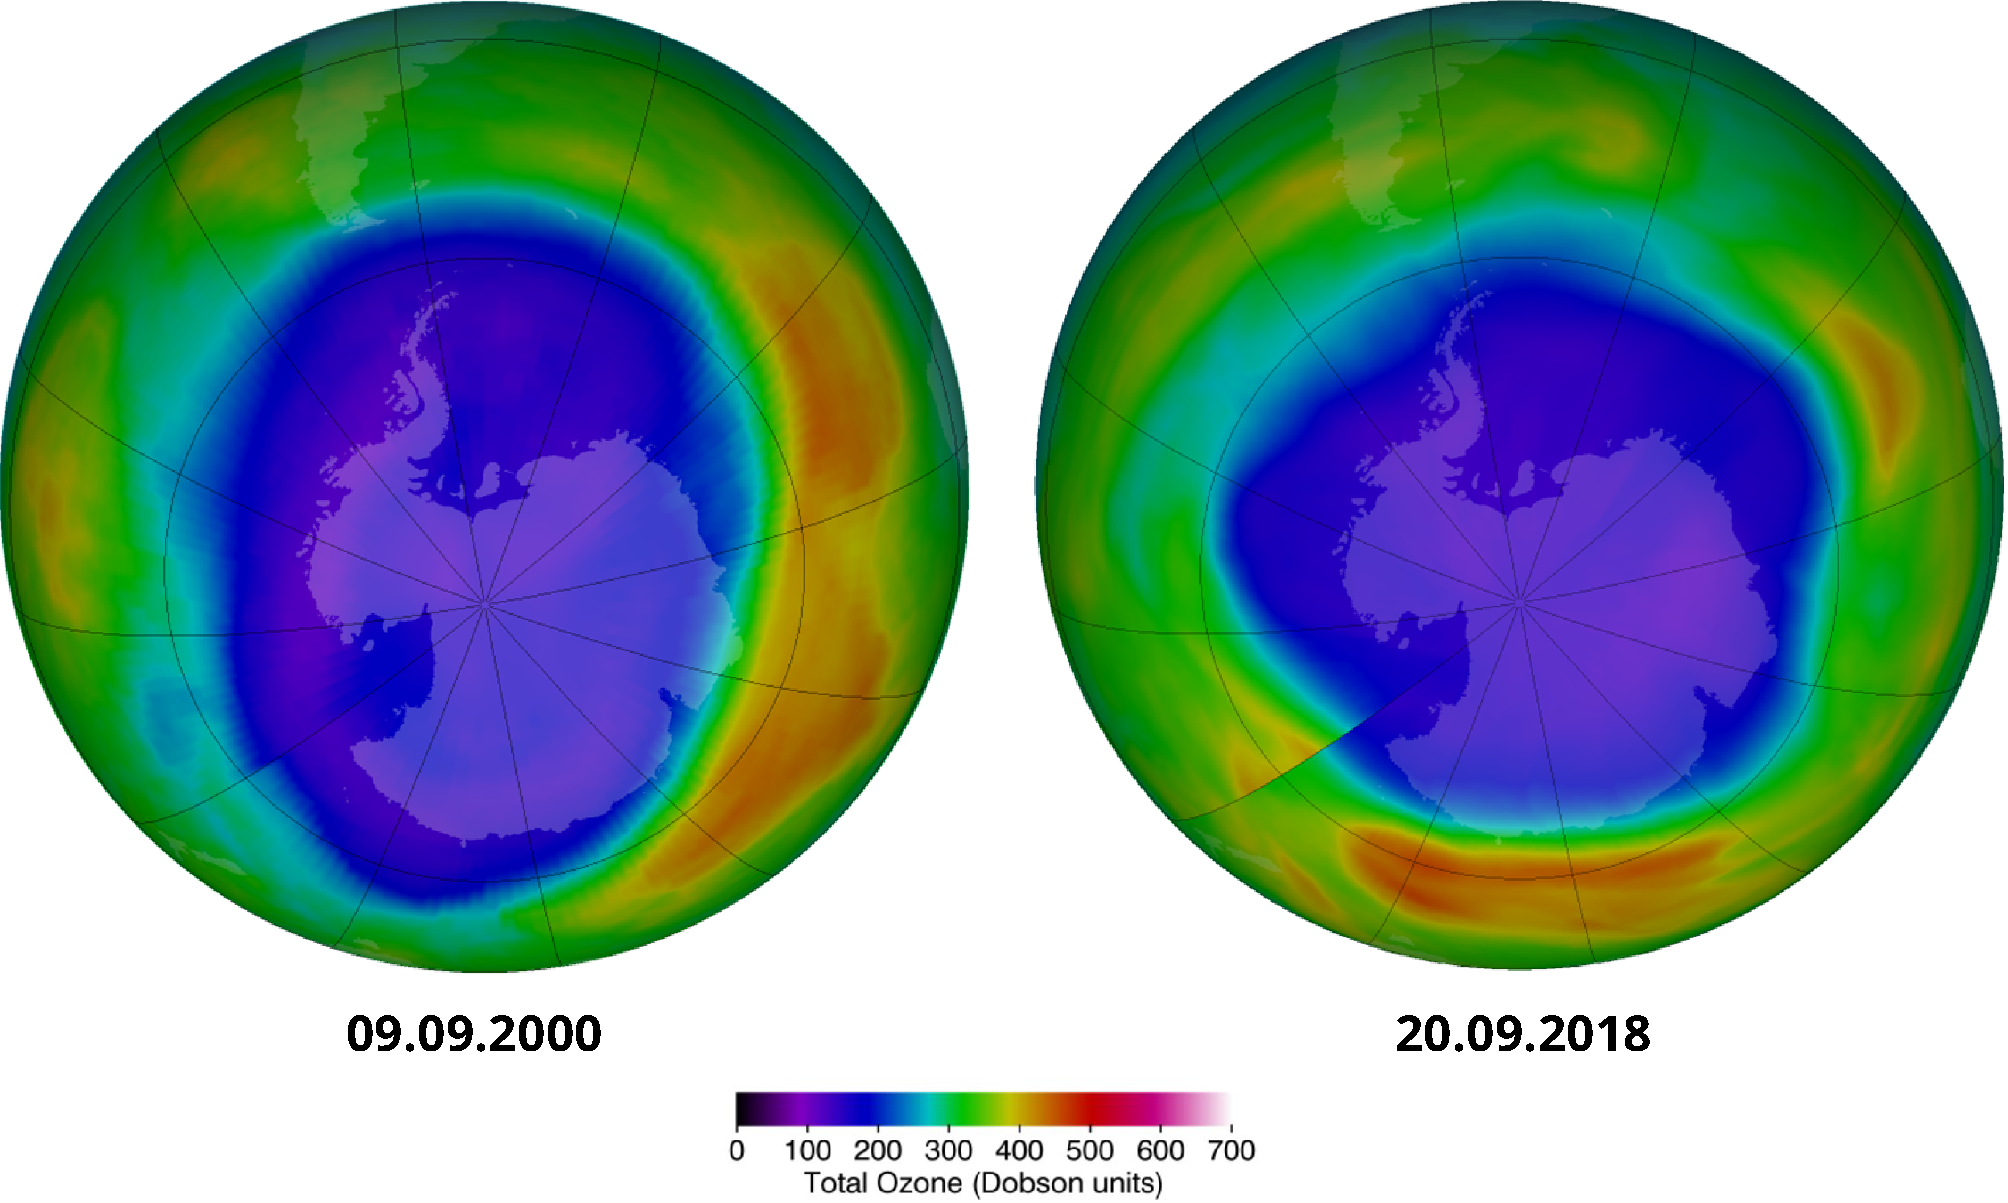 Maximum ozone hole area over the southern hemisphere, historically (9 September 2000) and currently (20 September 2018)